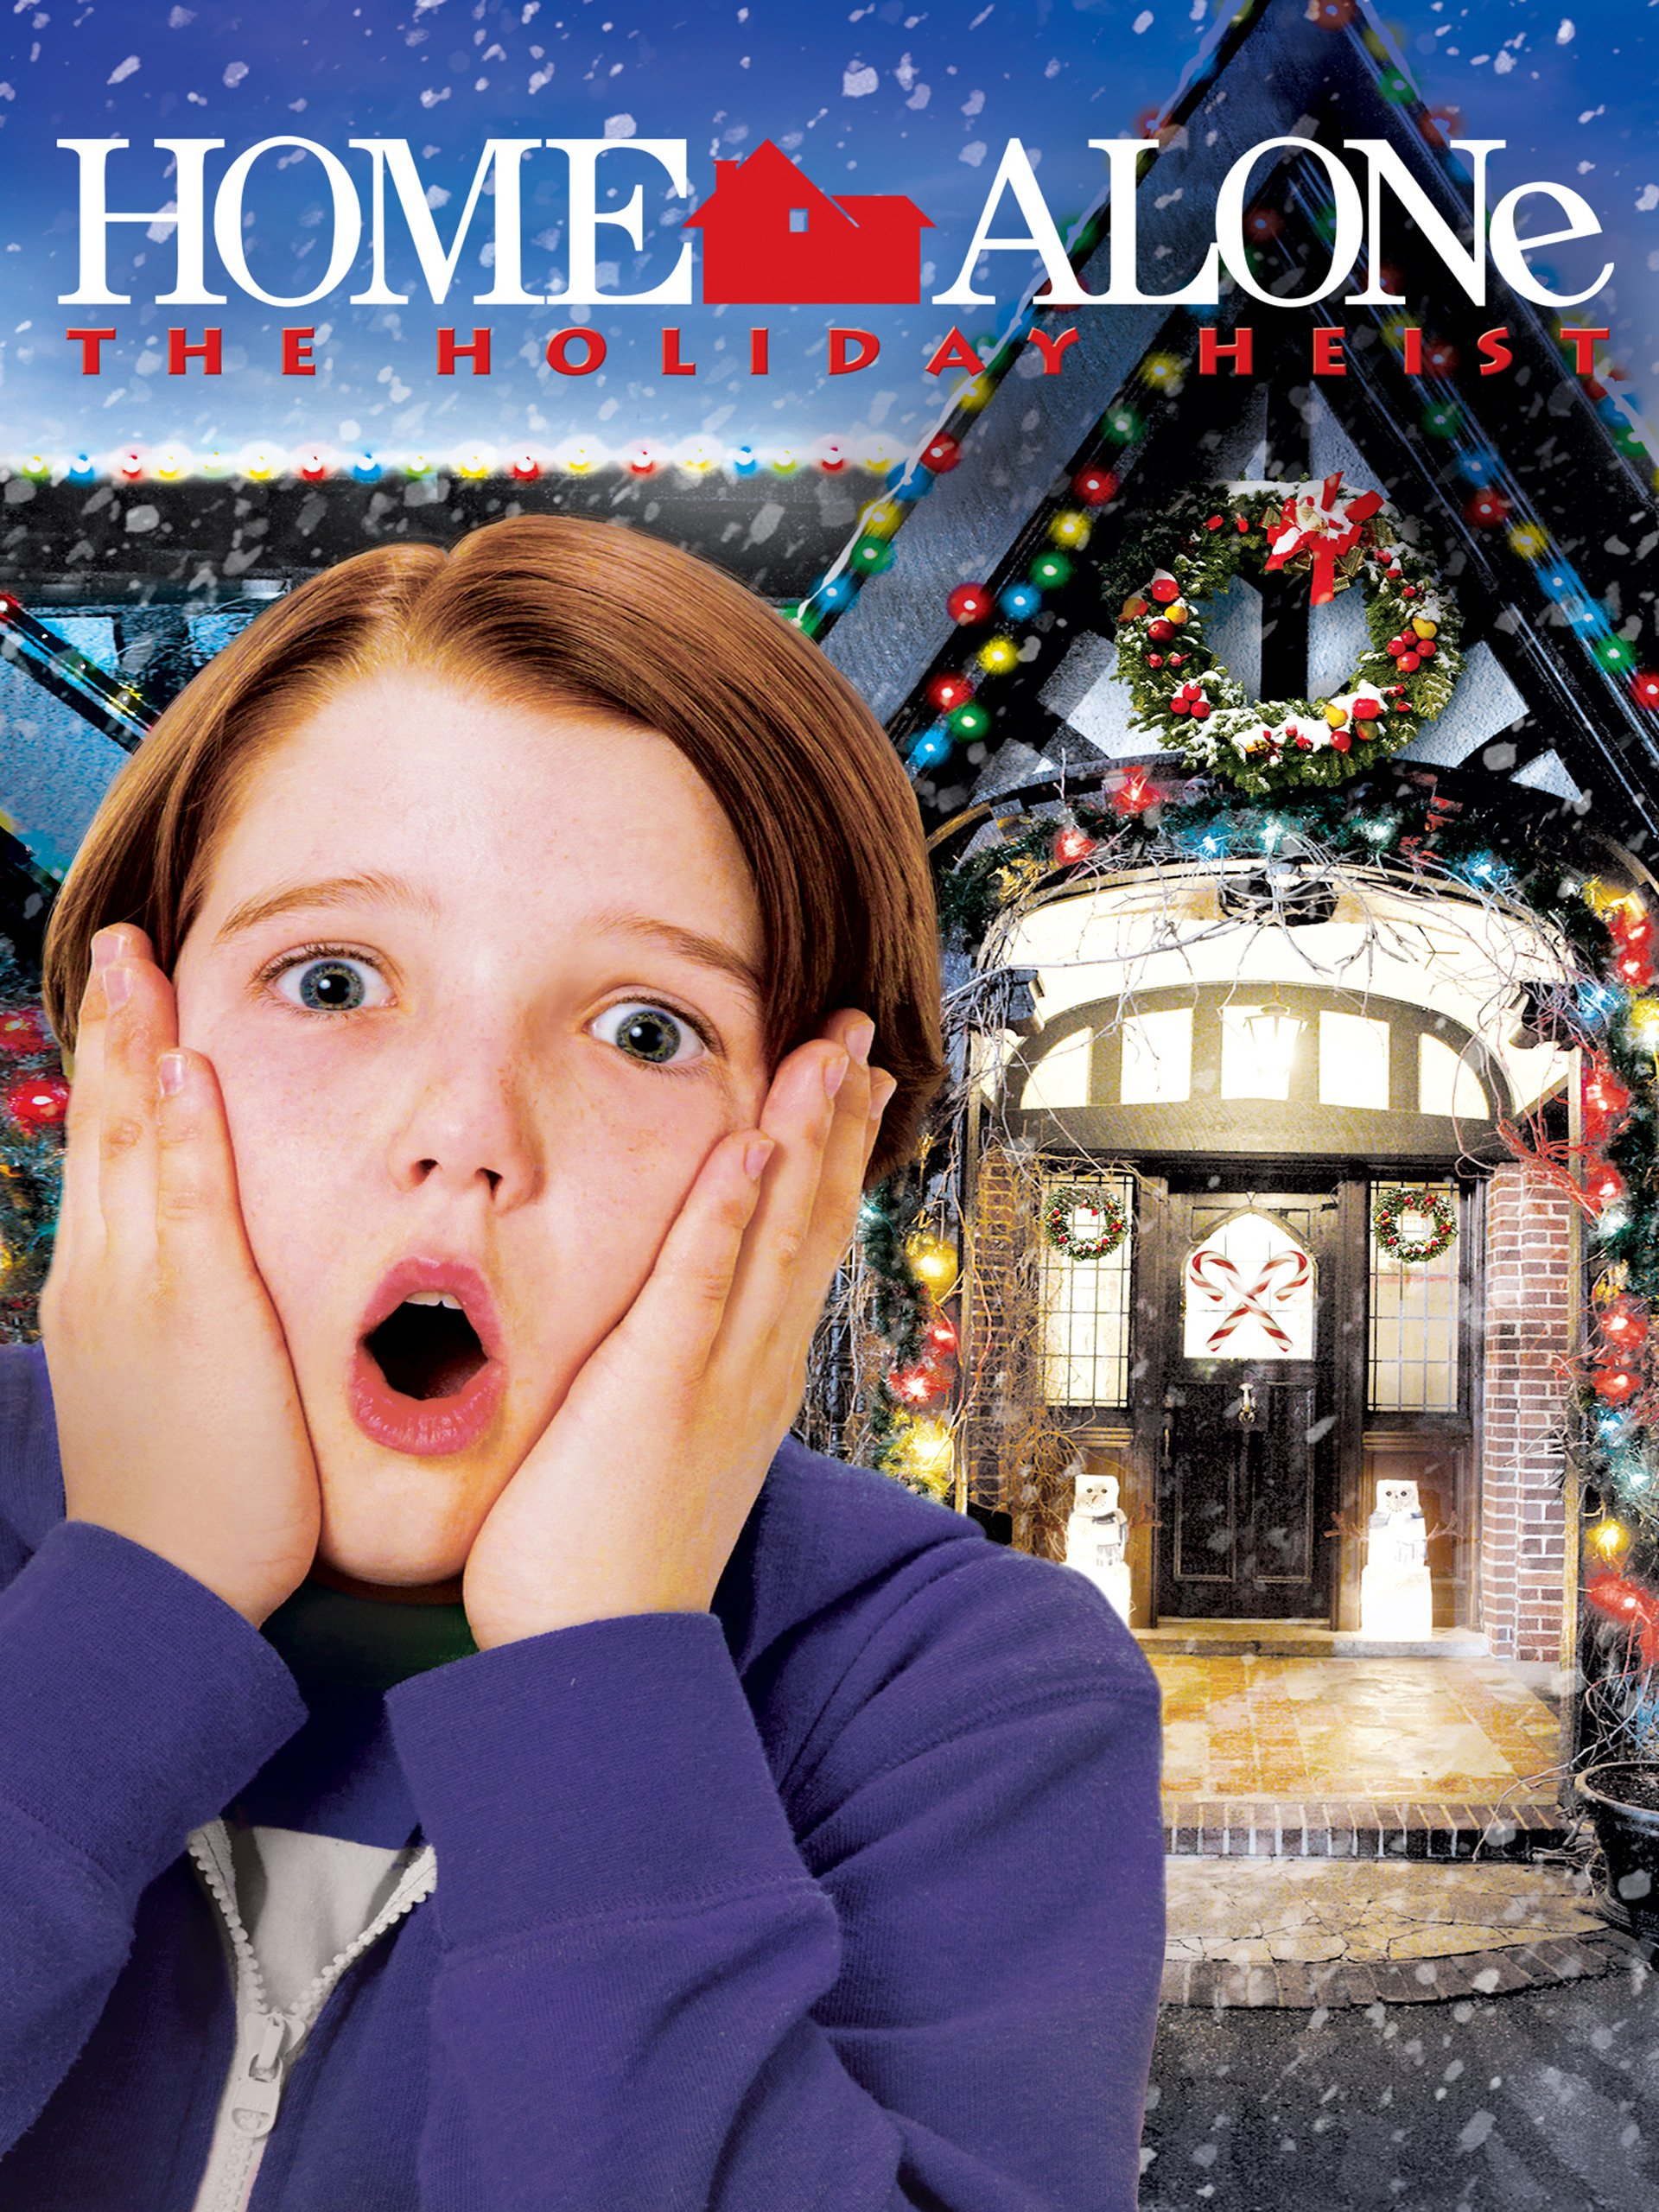 Home Alone 2 Lost In New York Watch online now with Amazon